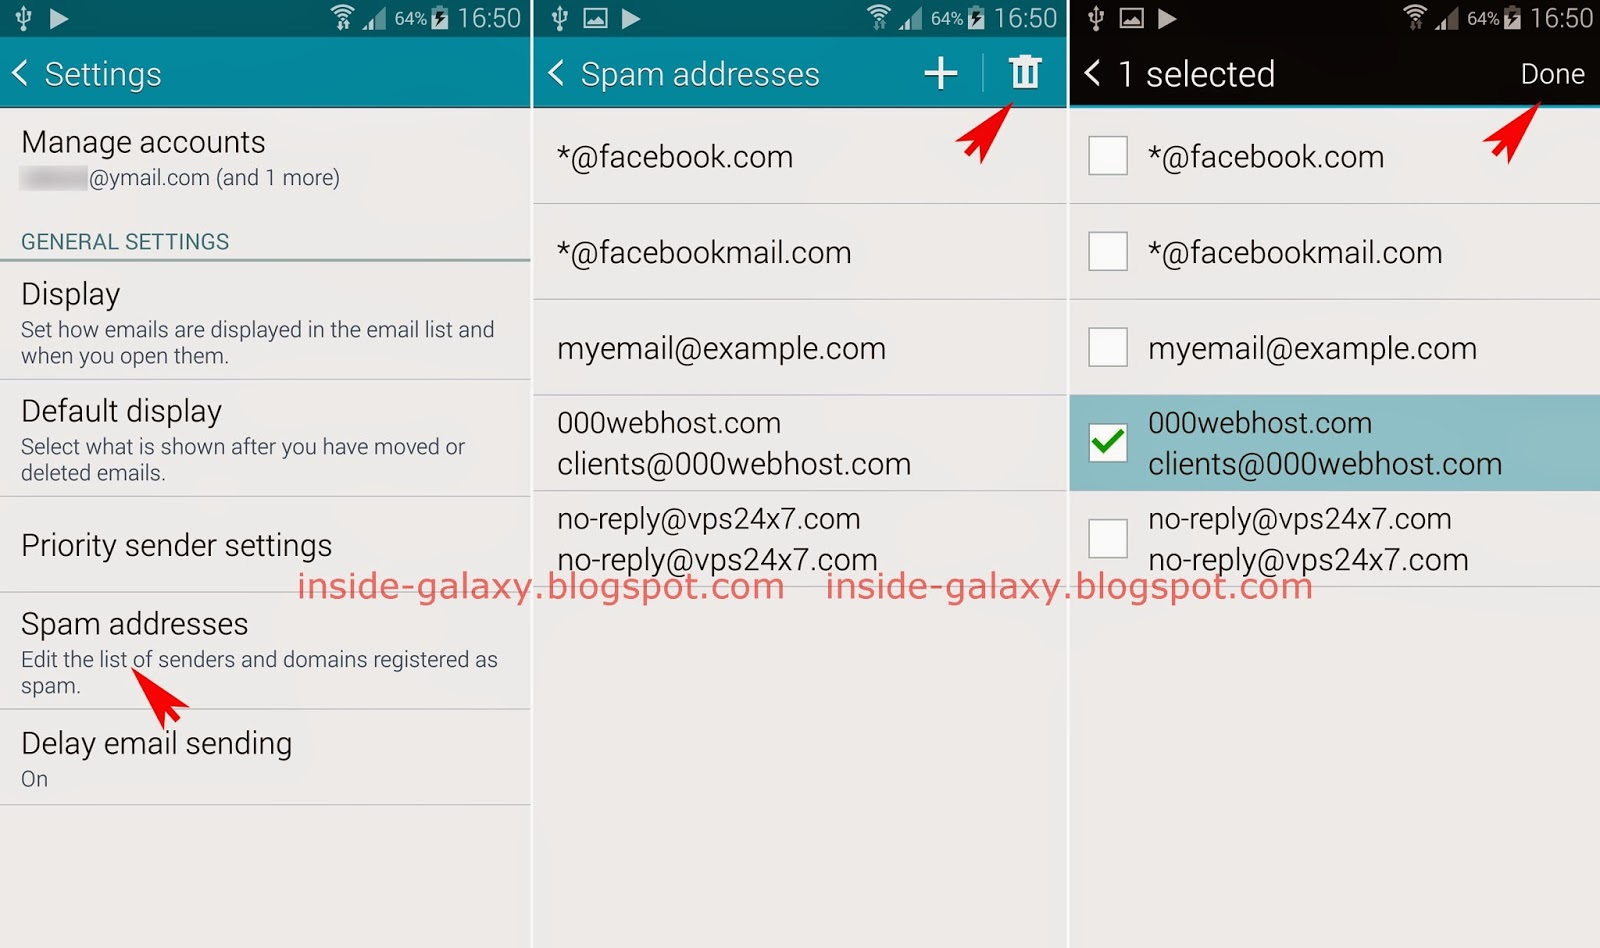 Samsung Galaxy S5: How to Remove Email Address or Domain